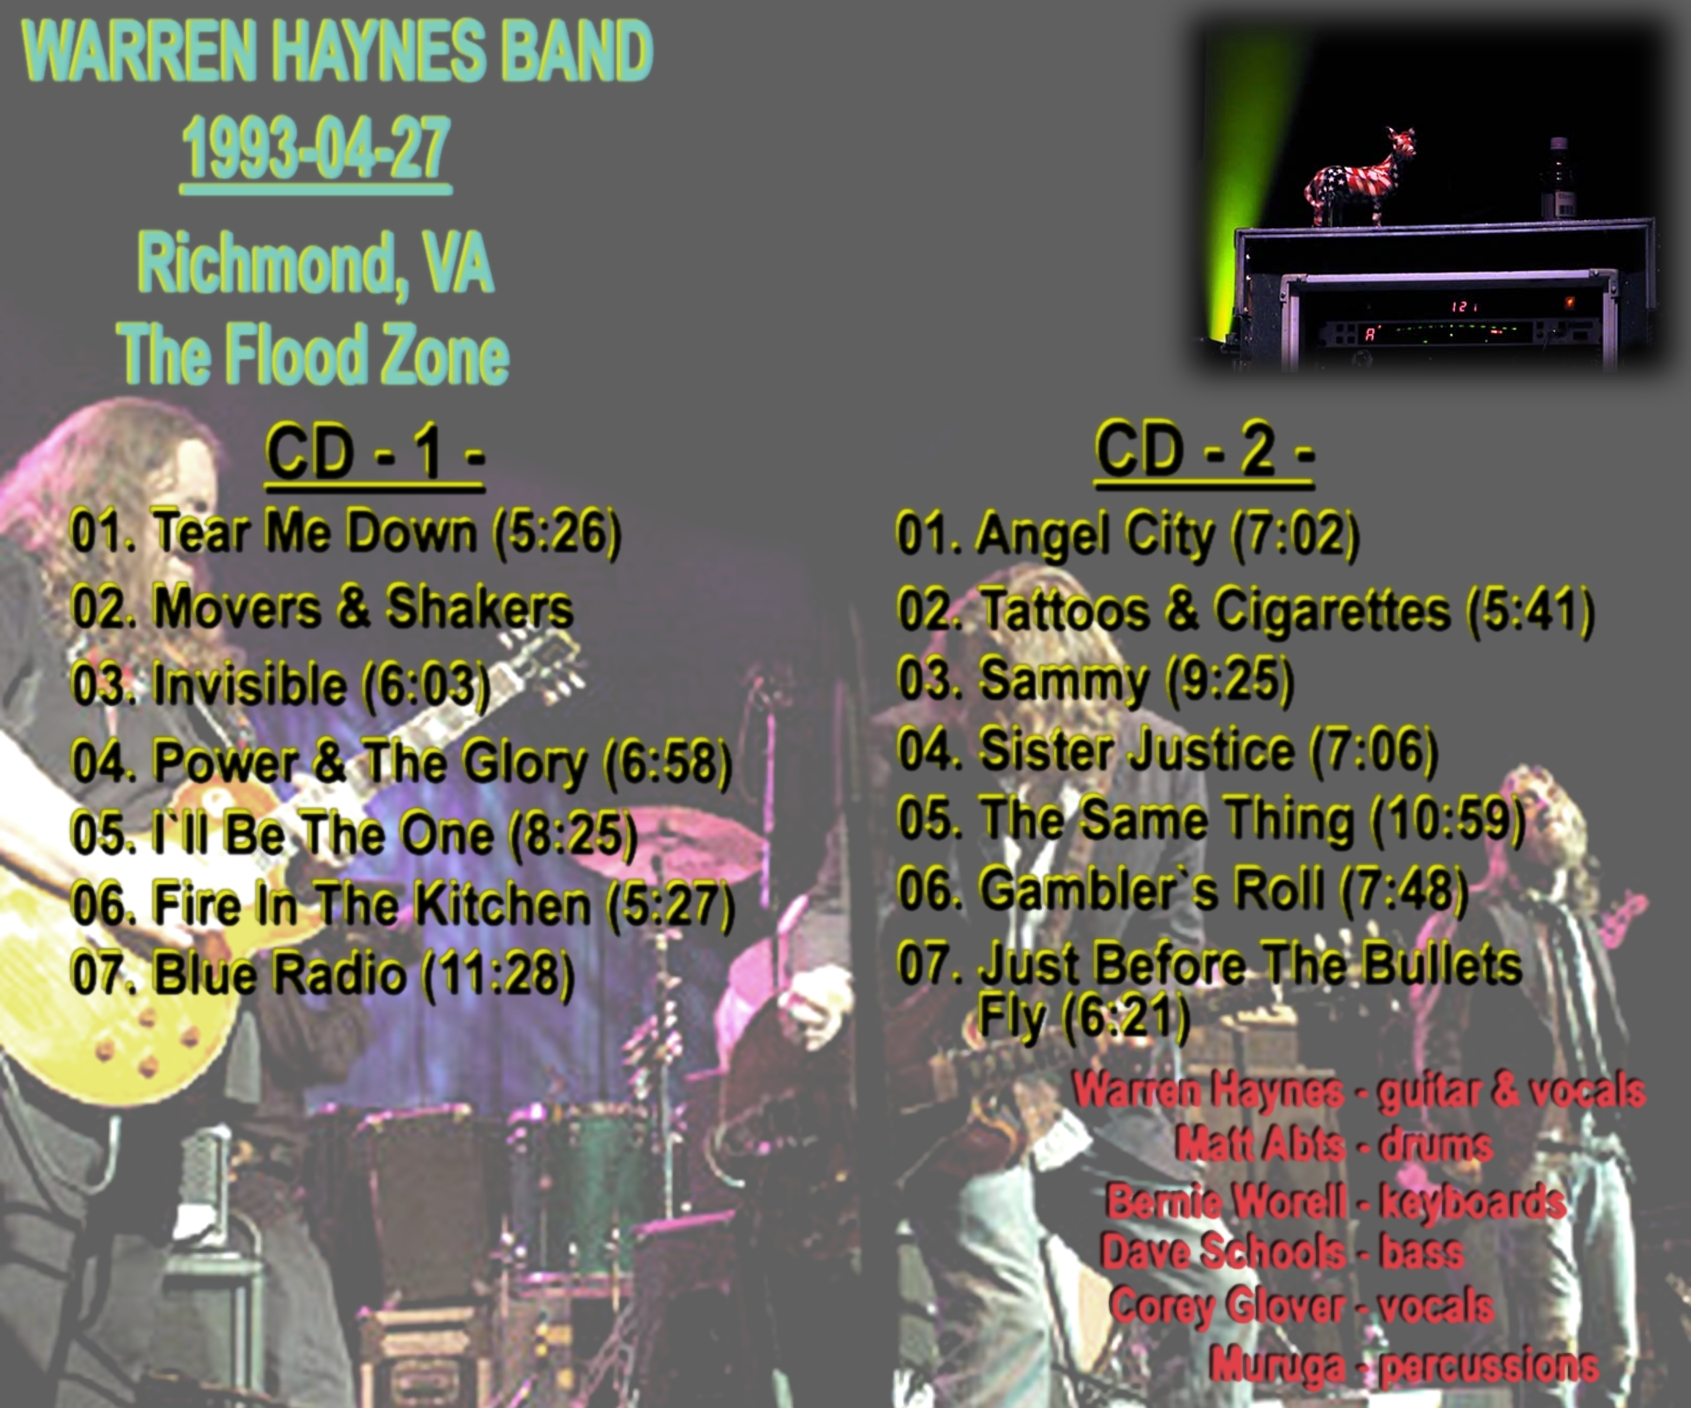 WarrenHaynesBand1993-04-27TheFloodZoneRichmondVA (4).jpg